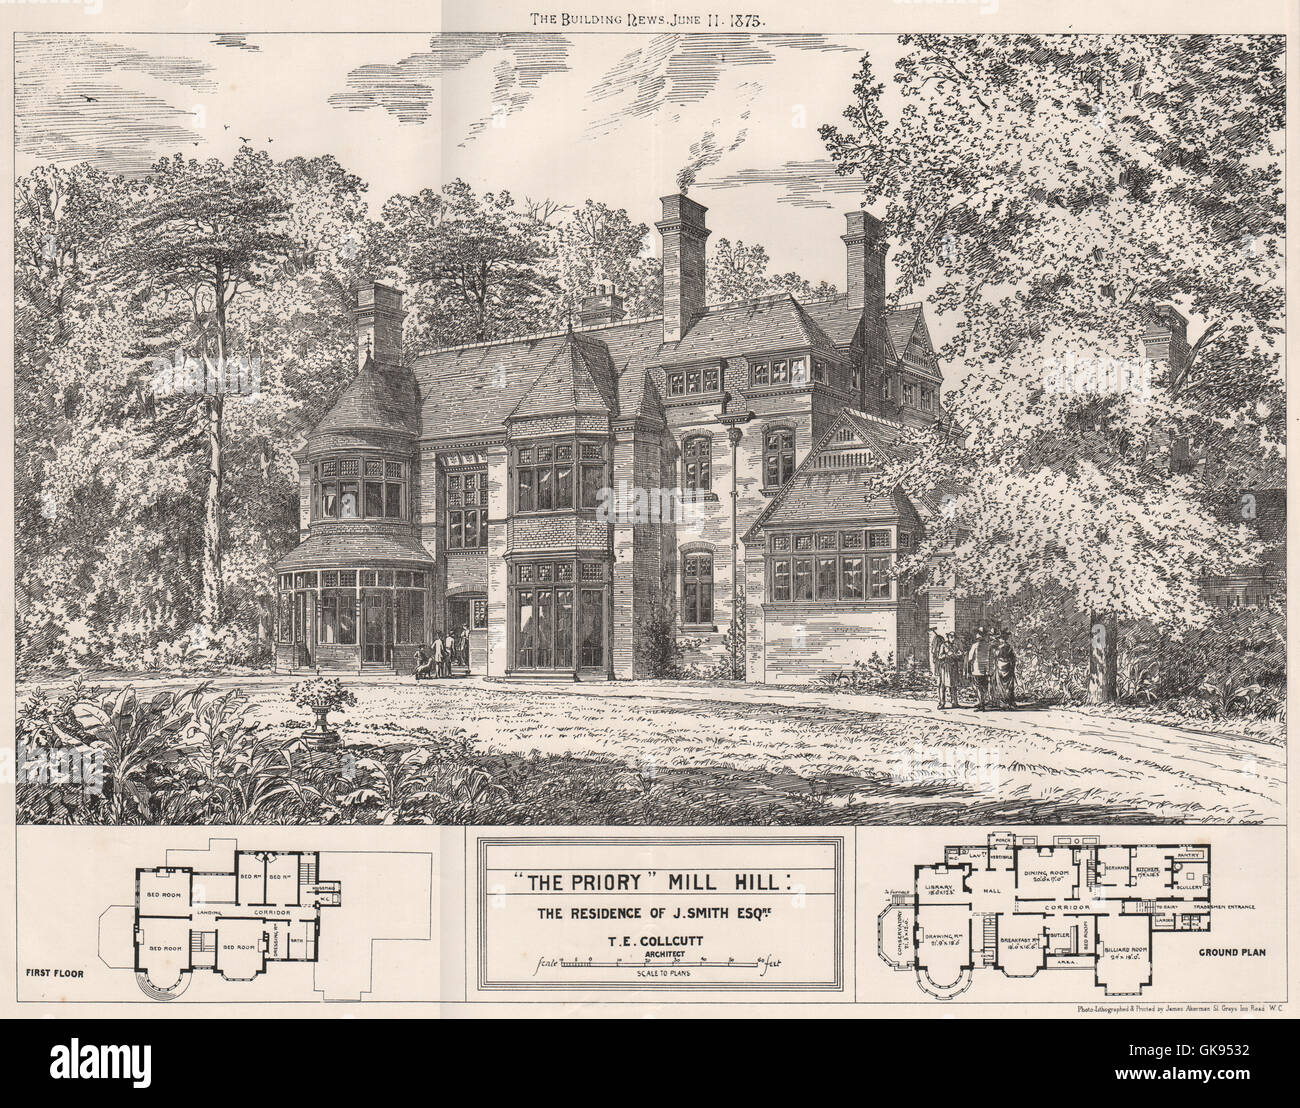 'The Priory', Mill Hill; the residence of J. Smith; T.E. Collcutt Archt, 1875 - Stock Image